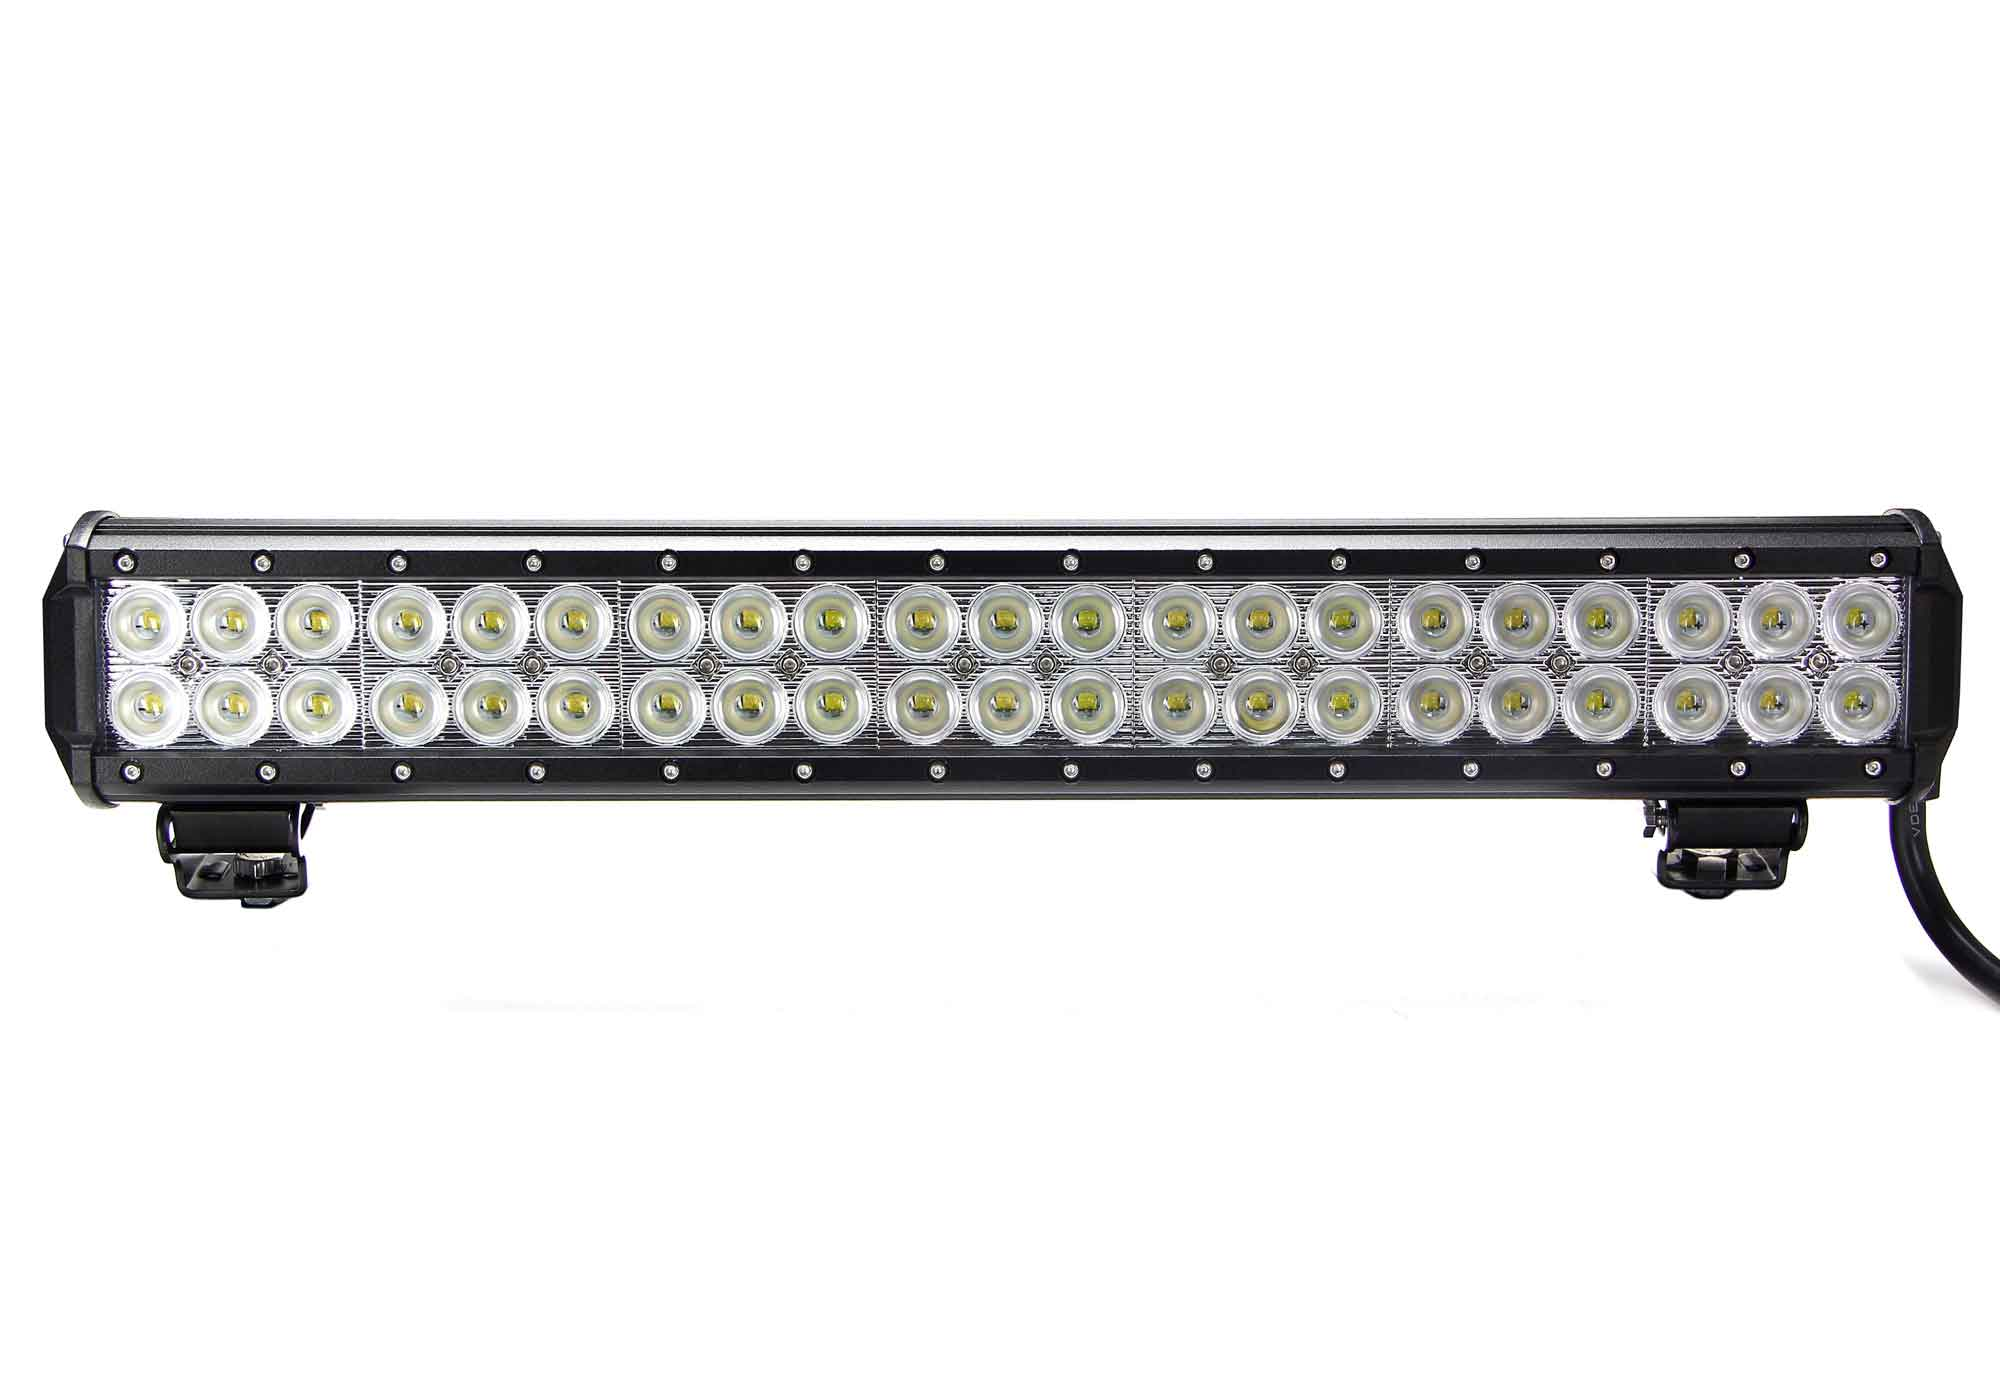 vortex series led light bar 20 inch 126 watt combo. Black Bedroom Furniture Sets. Home Design Ideas